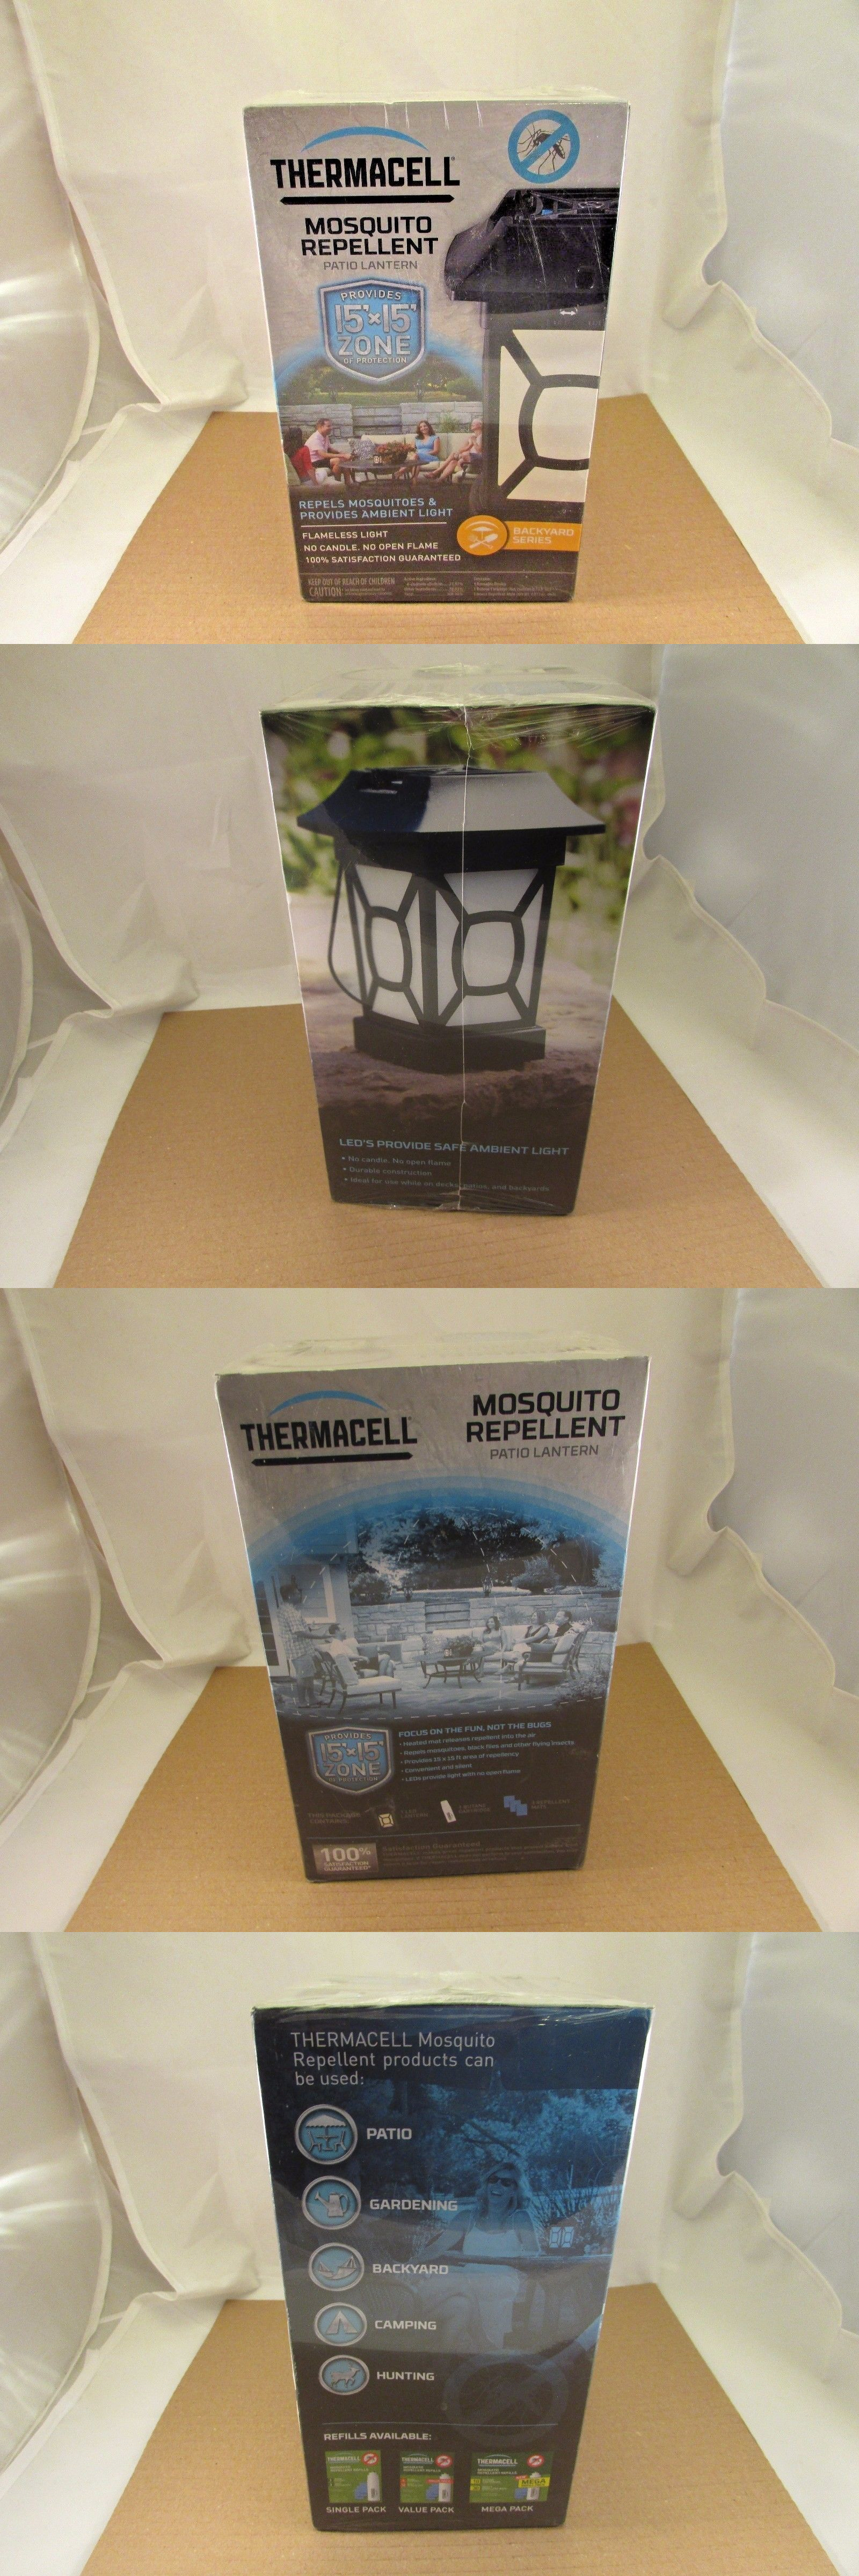 Insect Nets And Repellents 65965: Thermacell Patio Shield Mosquito  Repellent Lantern, Black   Mr